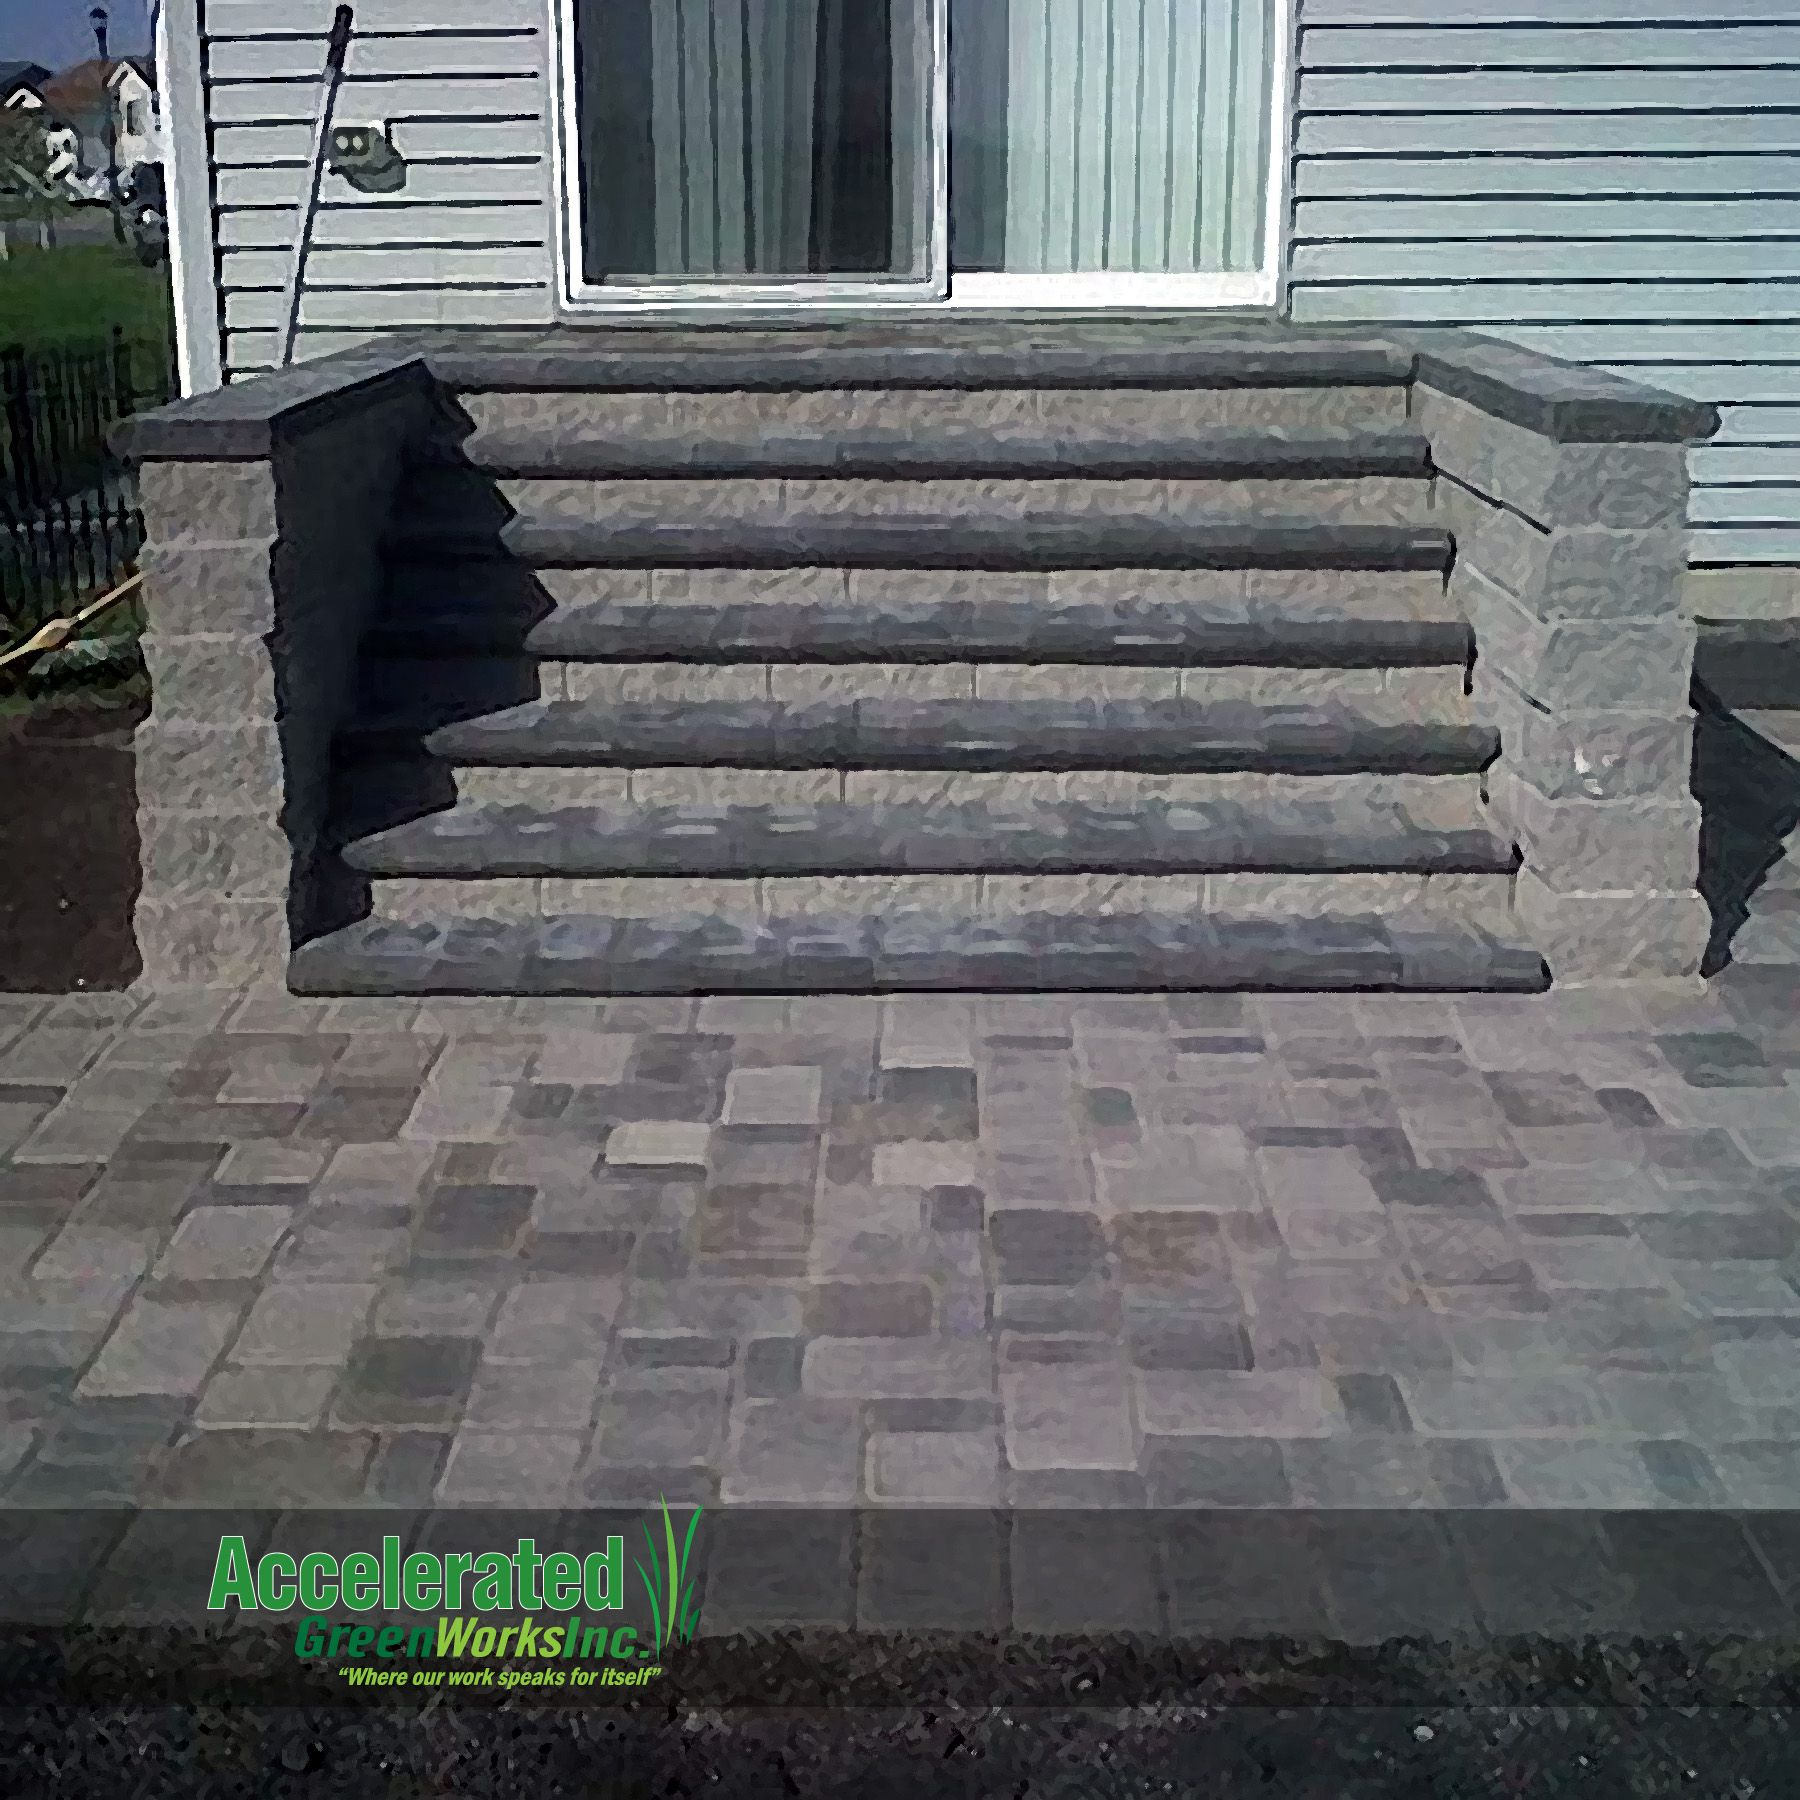 versa lok monumental steps lead from mid level patio door to blend with new - Patio Steps Design